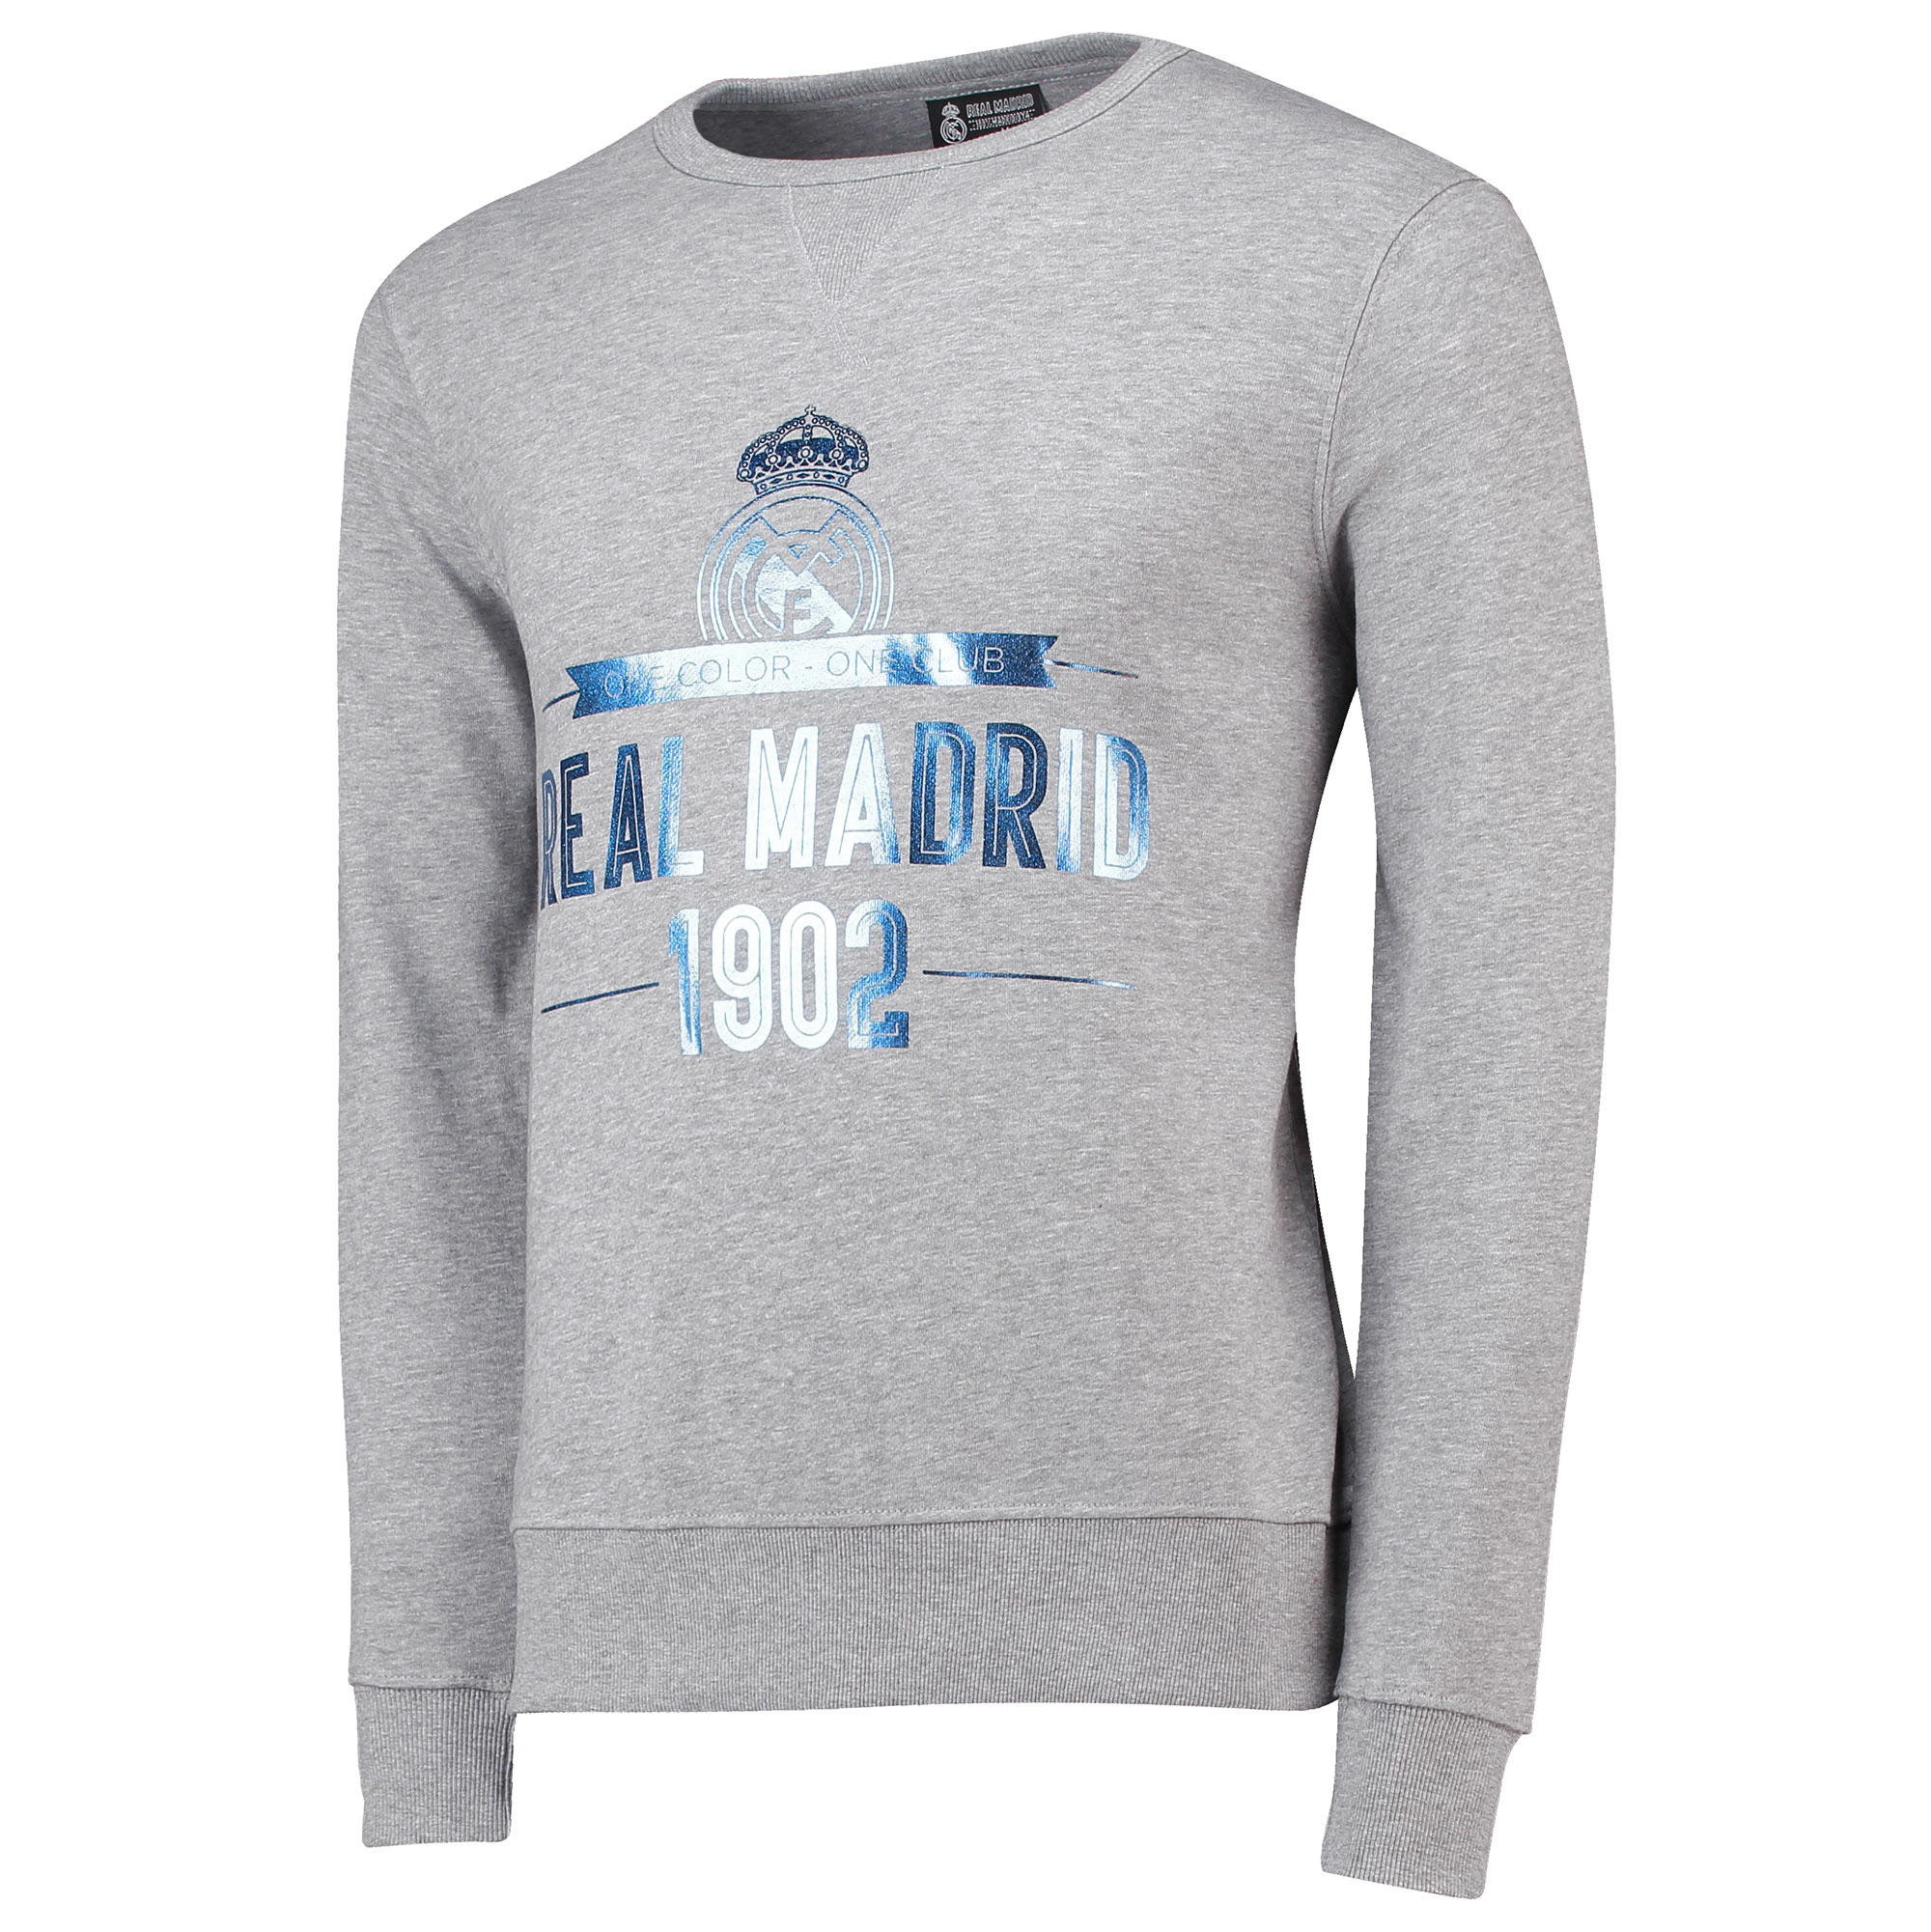 Image of Real Madrid 1902 Print Sweatshirt - Grey - Mens